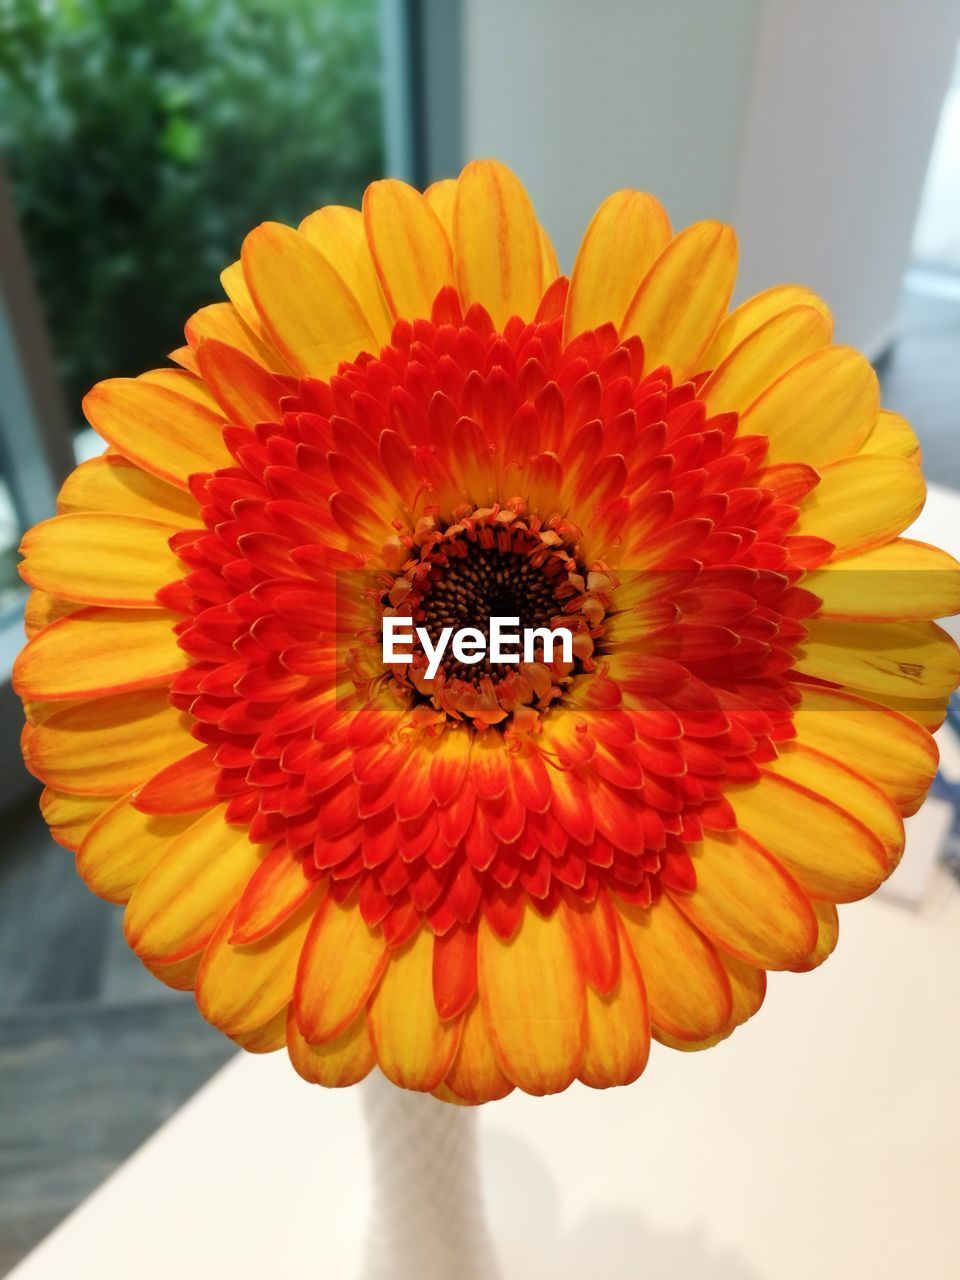 flower, petal, beauty in nature, flower head, fragility, freshness, nature, orange color, close-up, focus on foreground, yellow, outdoors, day, growth, plant, pollen, blooming, no people, zinnia